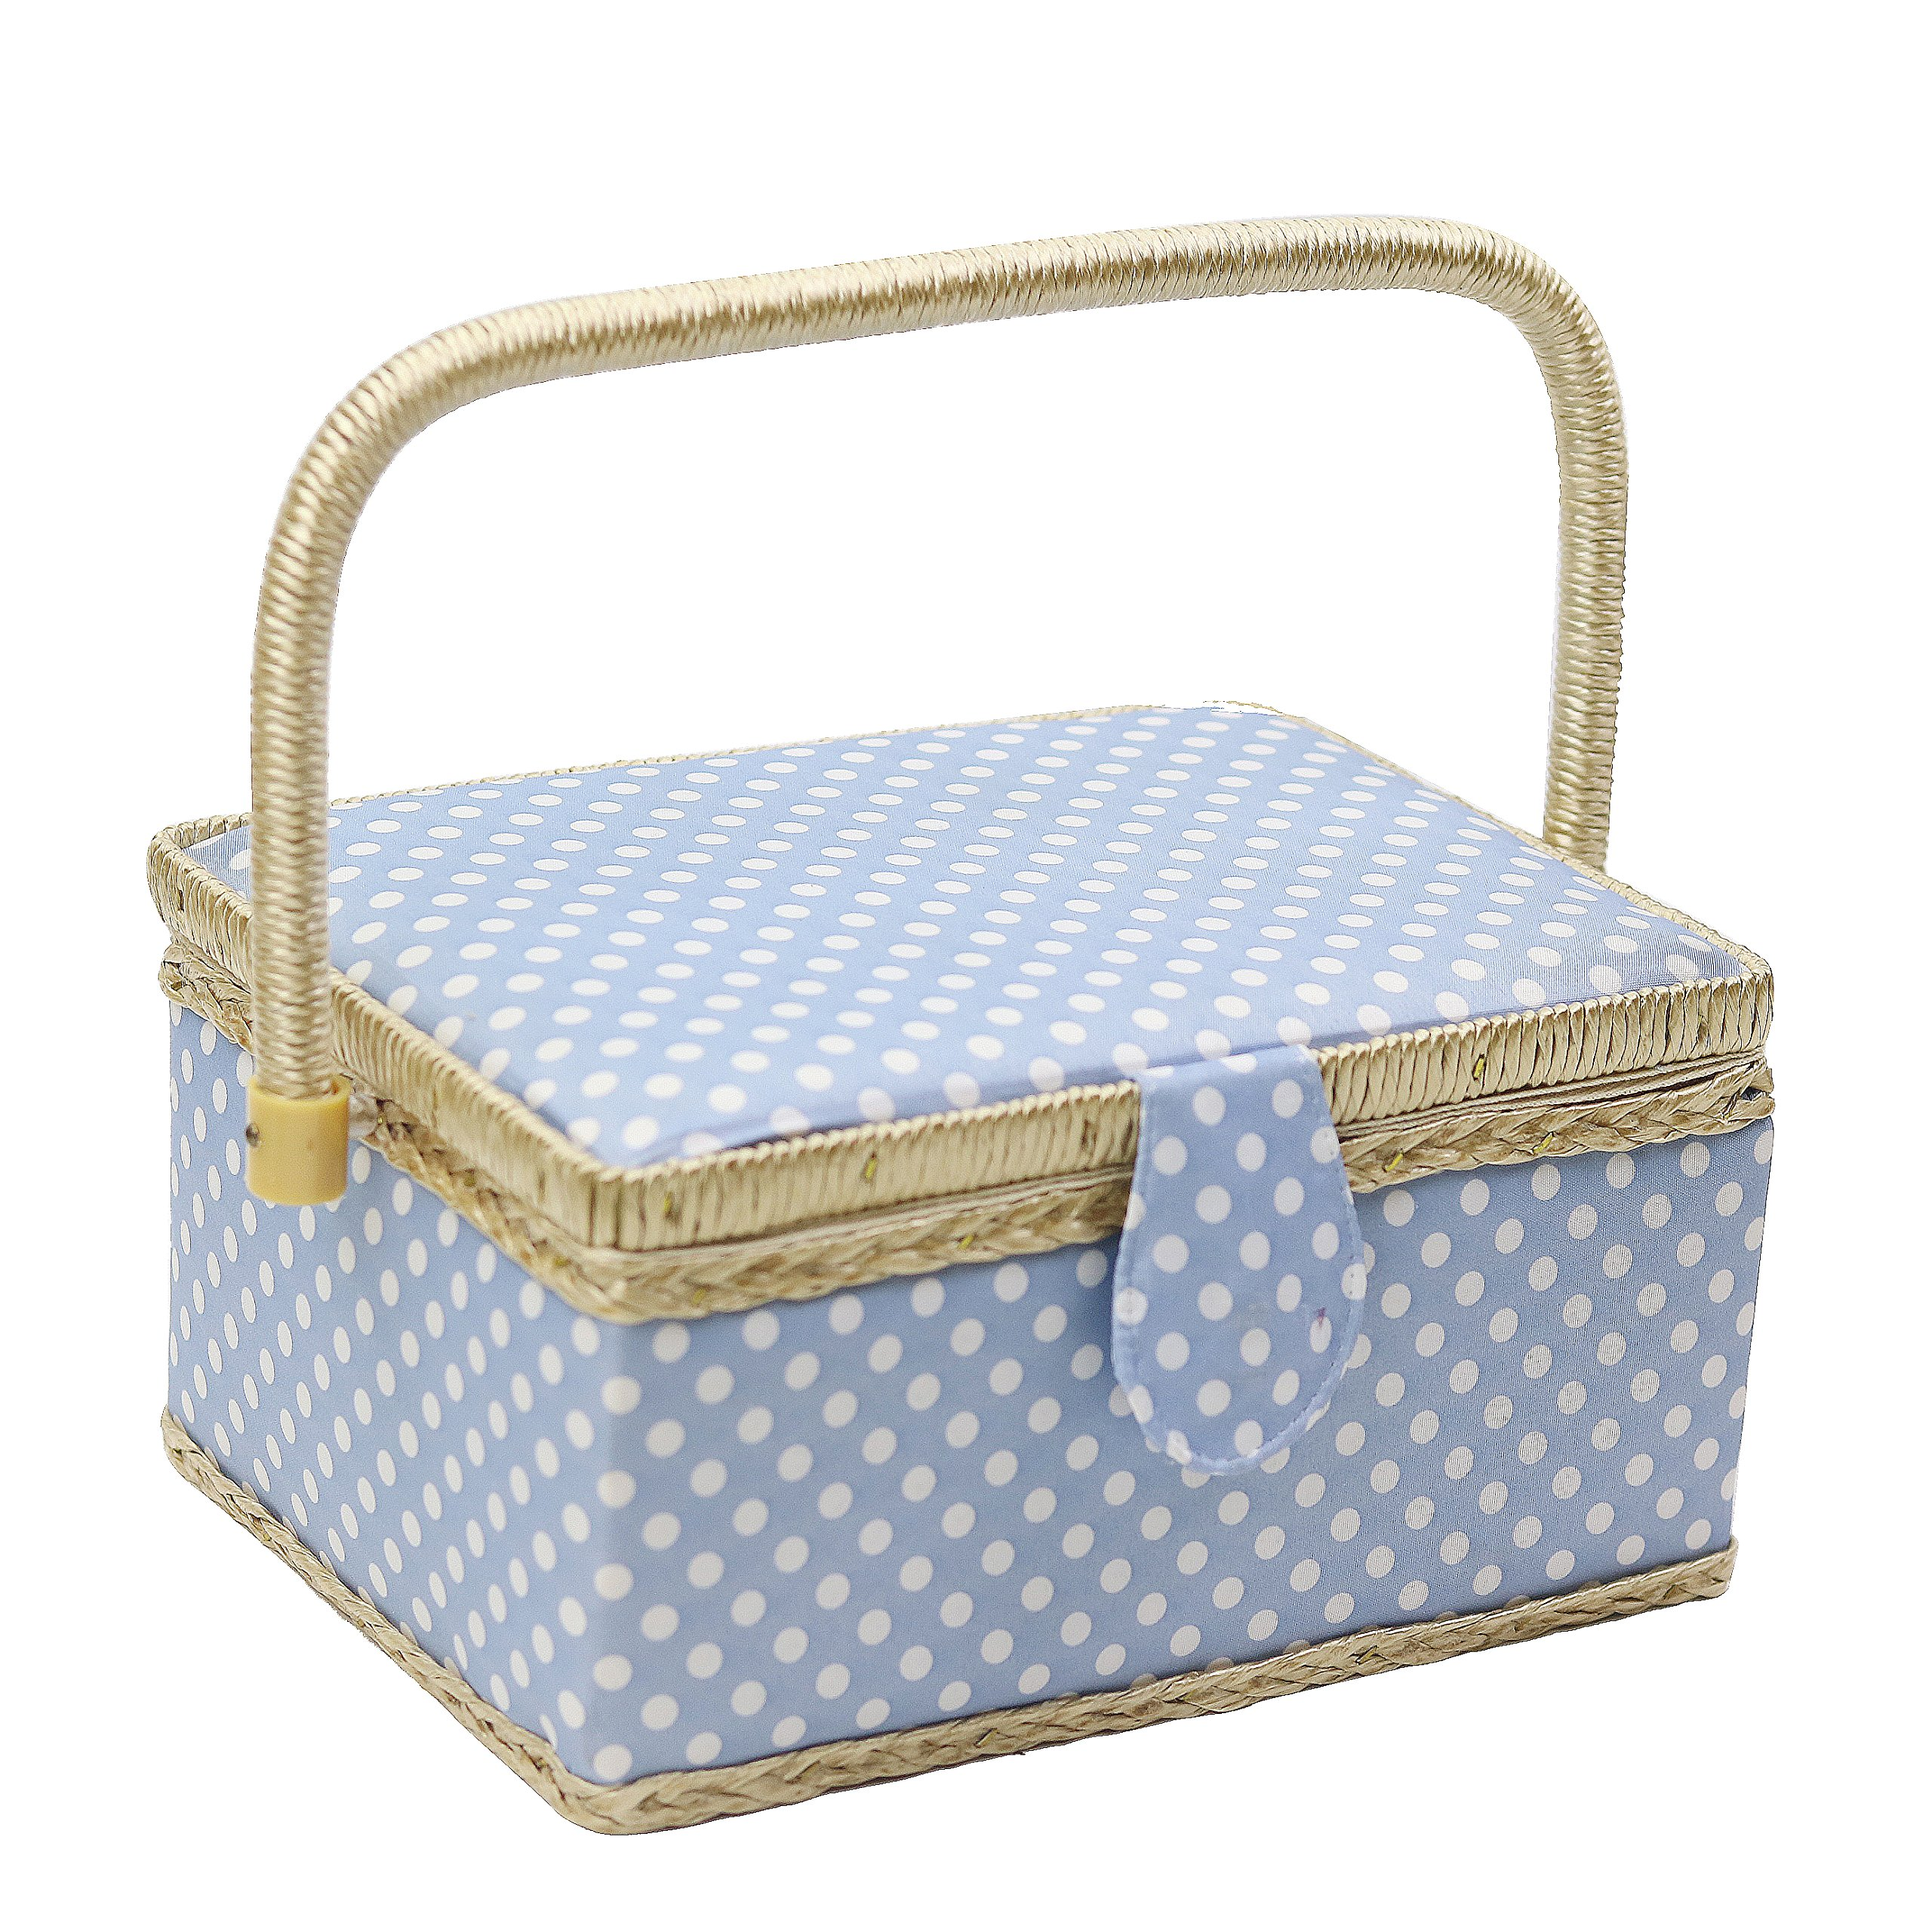 Wooden Sewing Basket Sewing Box Sewing Accessories Kit Good for Adults//Kids//Girls//Beginner//Professional